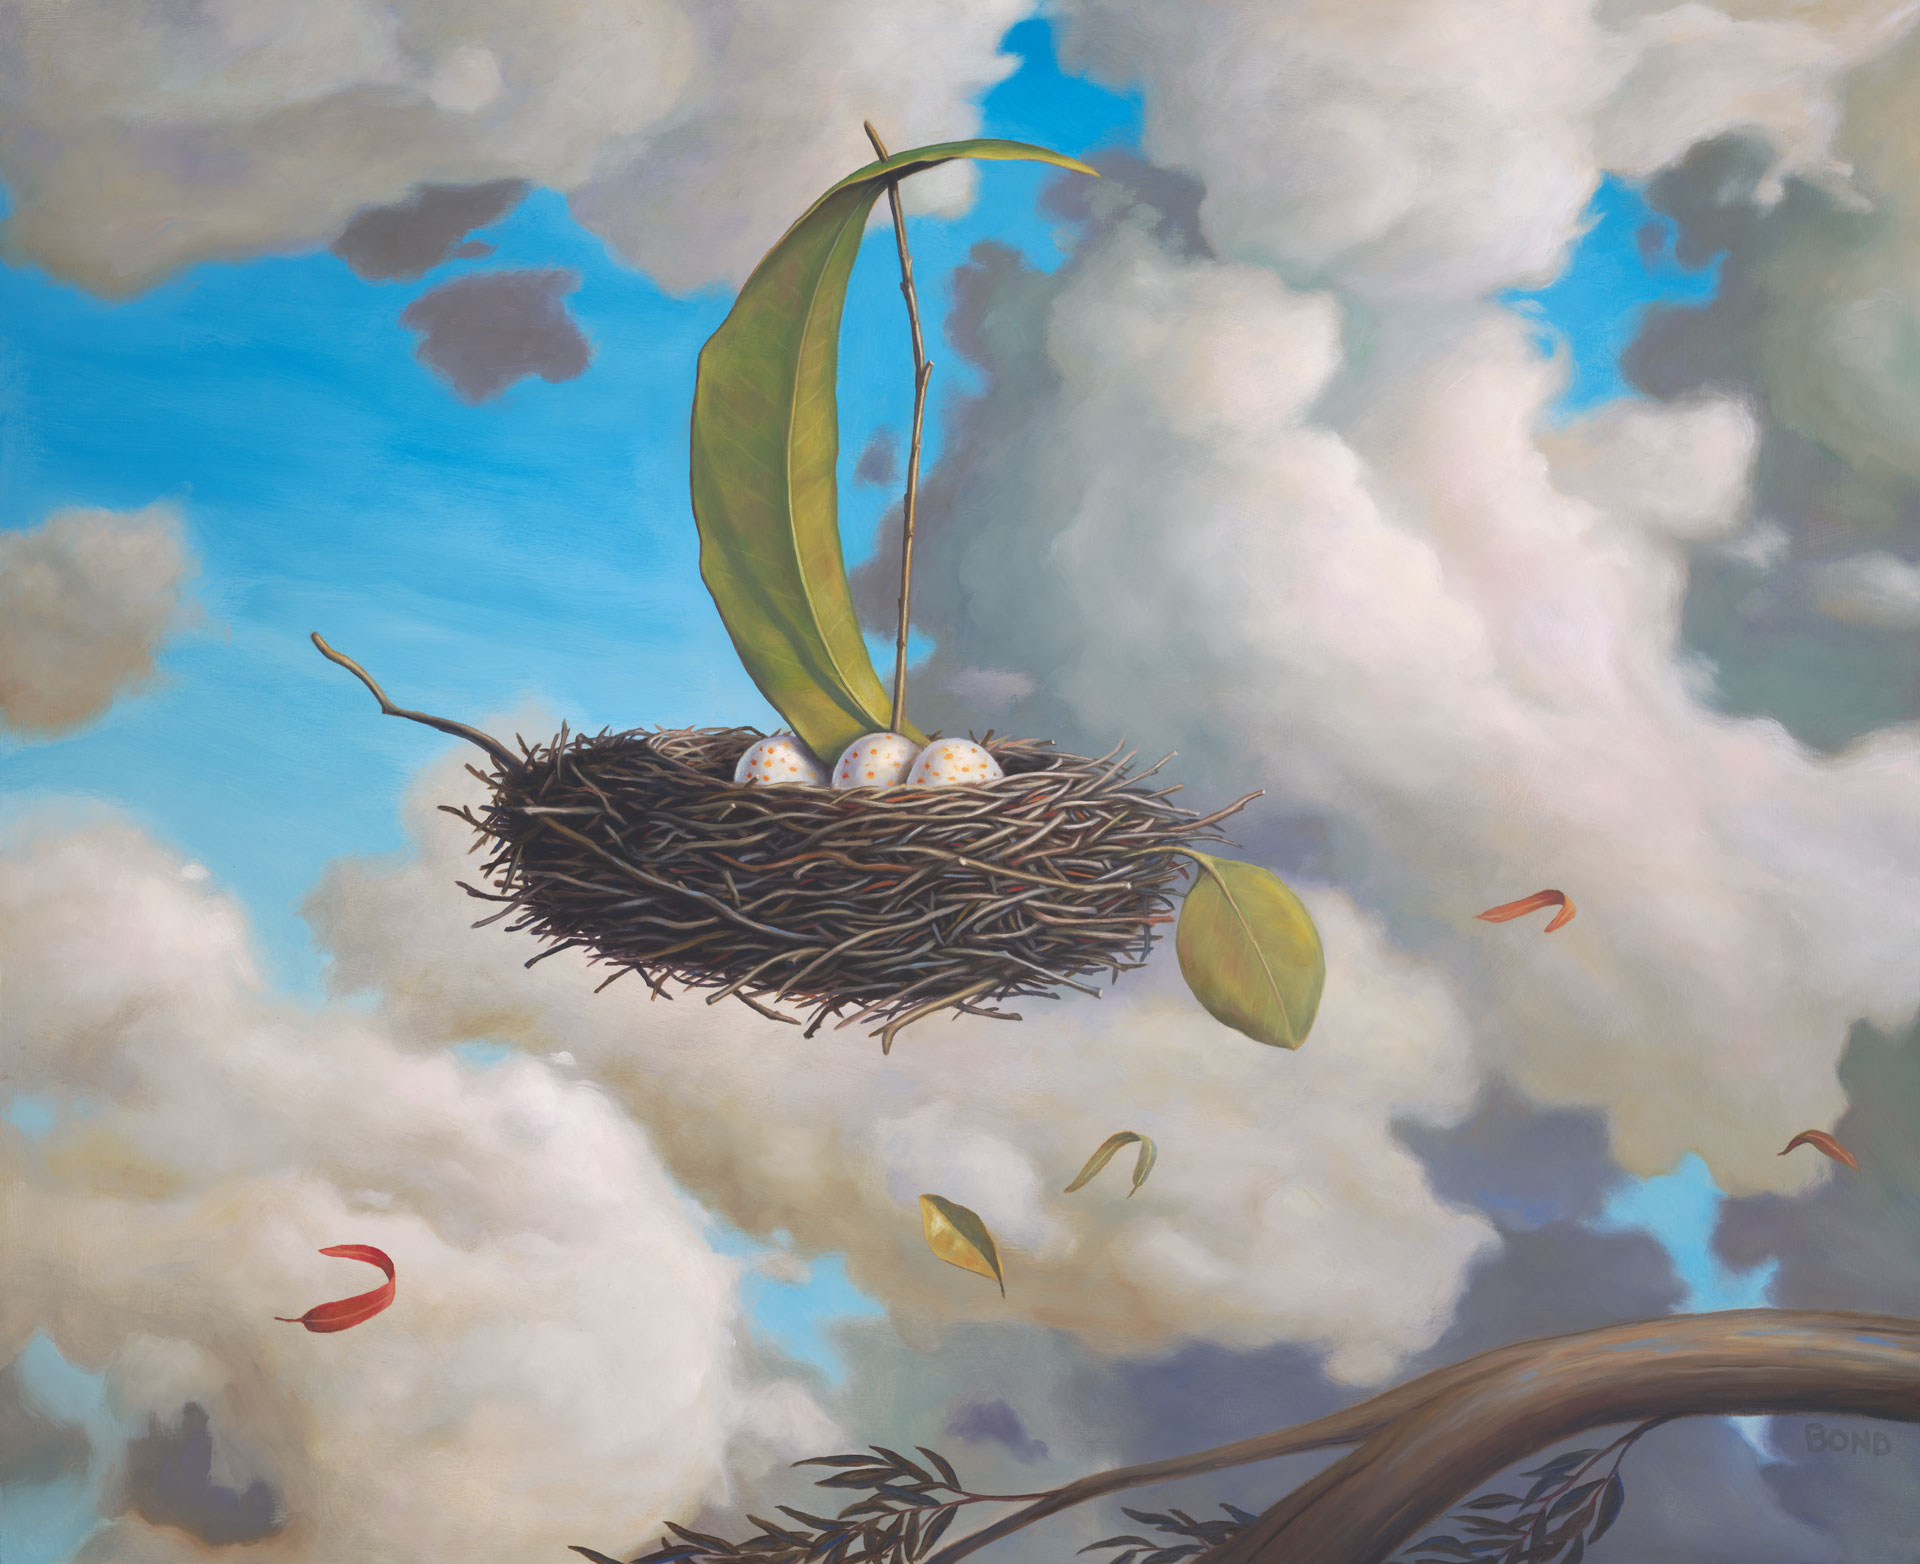 A Favorable Wind, painting of floating birds nest with three eggs, elements in art are leafs and twigs floating on a breeze wind with clouds, art metaphors are grace risk courage and taking chances, soulful uplifting inspirational art, soul stirring illusion art, romantic art,  surrealism, surreal art, dreamlike imagery, fanciful art, fantasy art, dreamscape visual, metaphysical art, spiritual painting, metaphysical painting, spiritual art, whimsical art, whimsy art, dream art, fantastic realism art, limited edition giclee, signed art print, fine art reproduction, original magic realism oil painting by Paul Bond